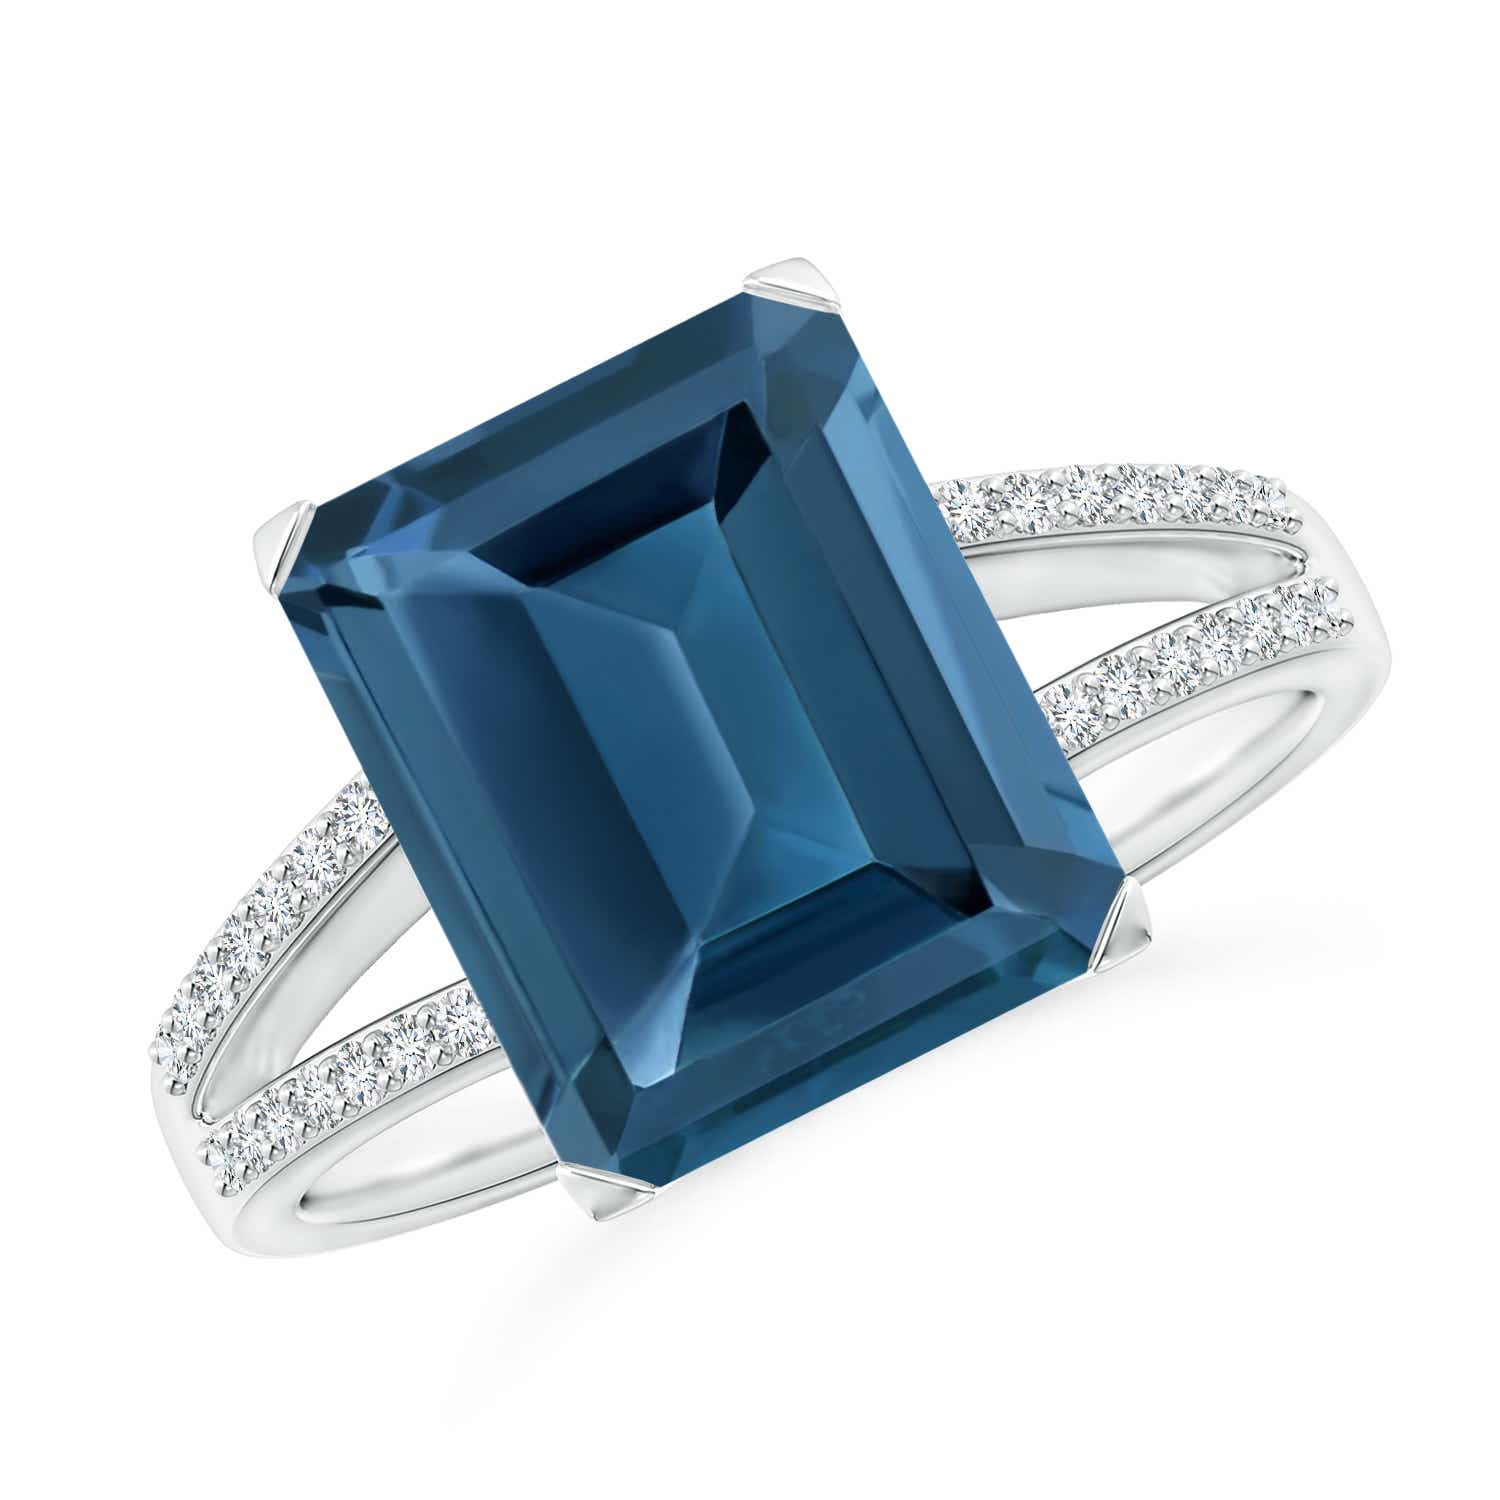 Angara Emerald-Cut London Blue Topaz Diamond Solitaire Ring in Yellow Gold rMv0zDV